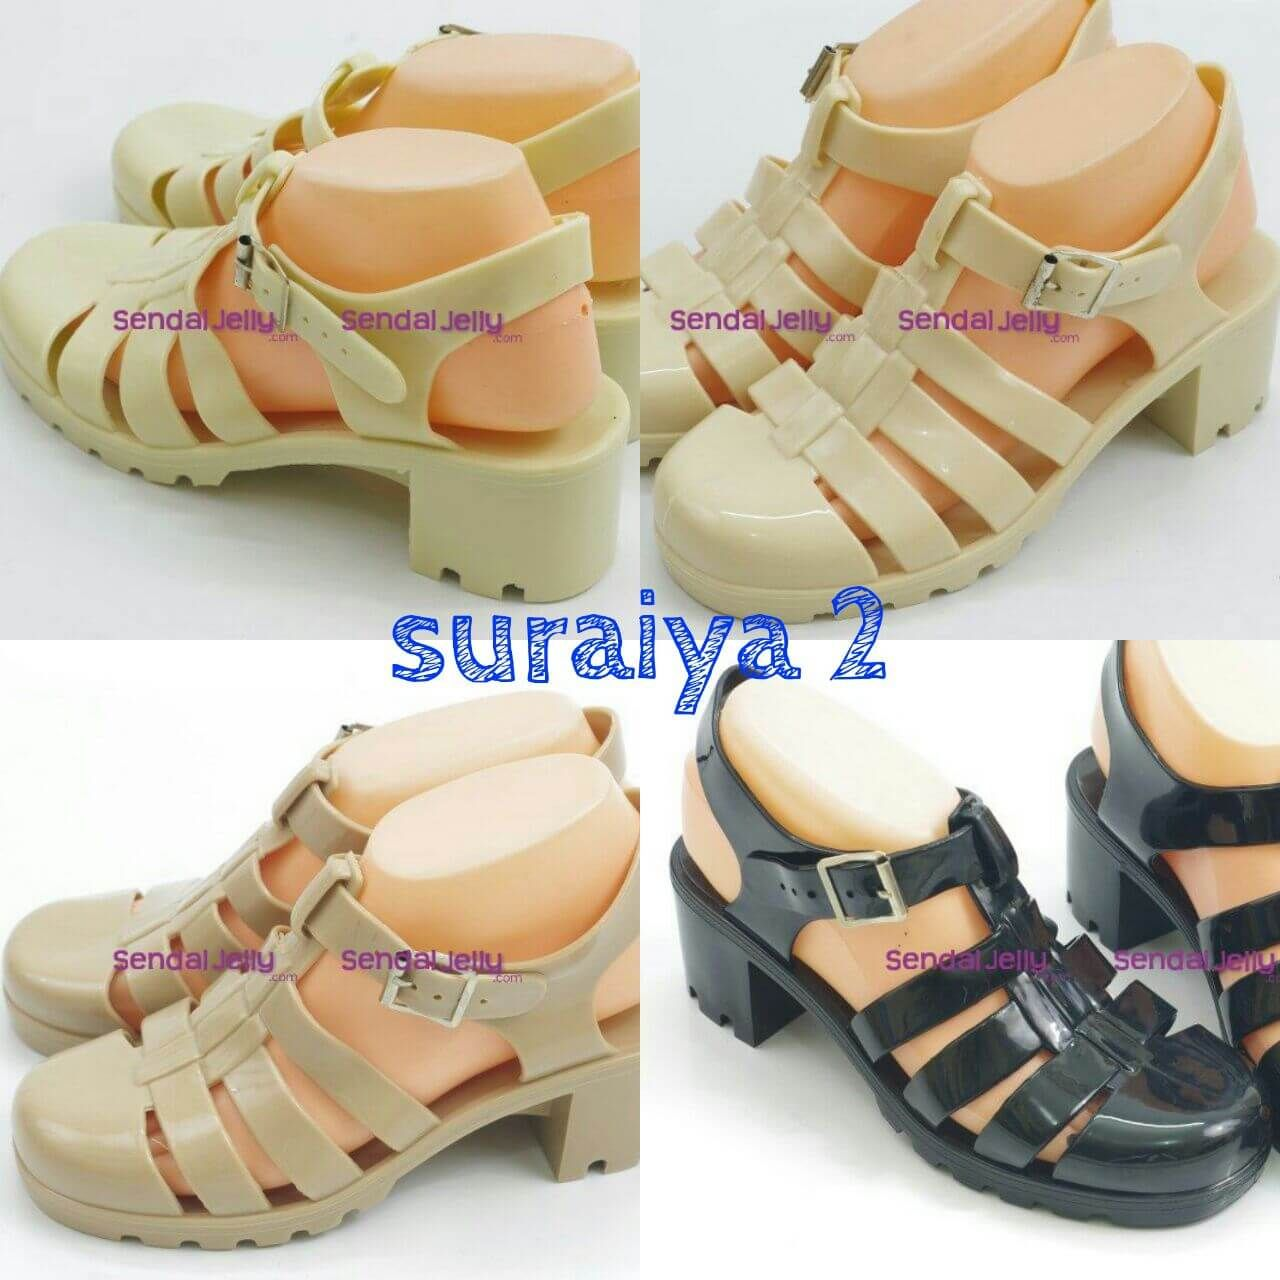 Pin By Sendaljelly On Sandal Jelly Murah Pinterest Sandals And Wedges Sepatu Sendal Visit